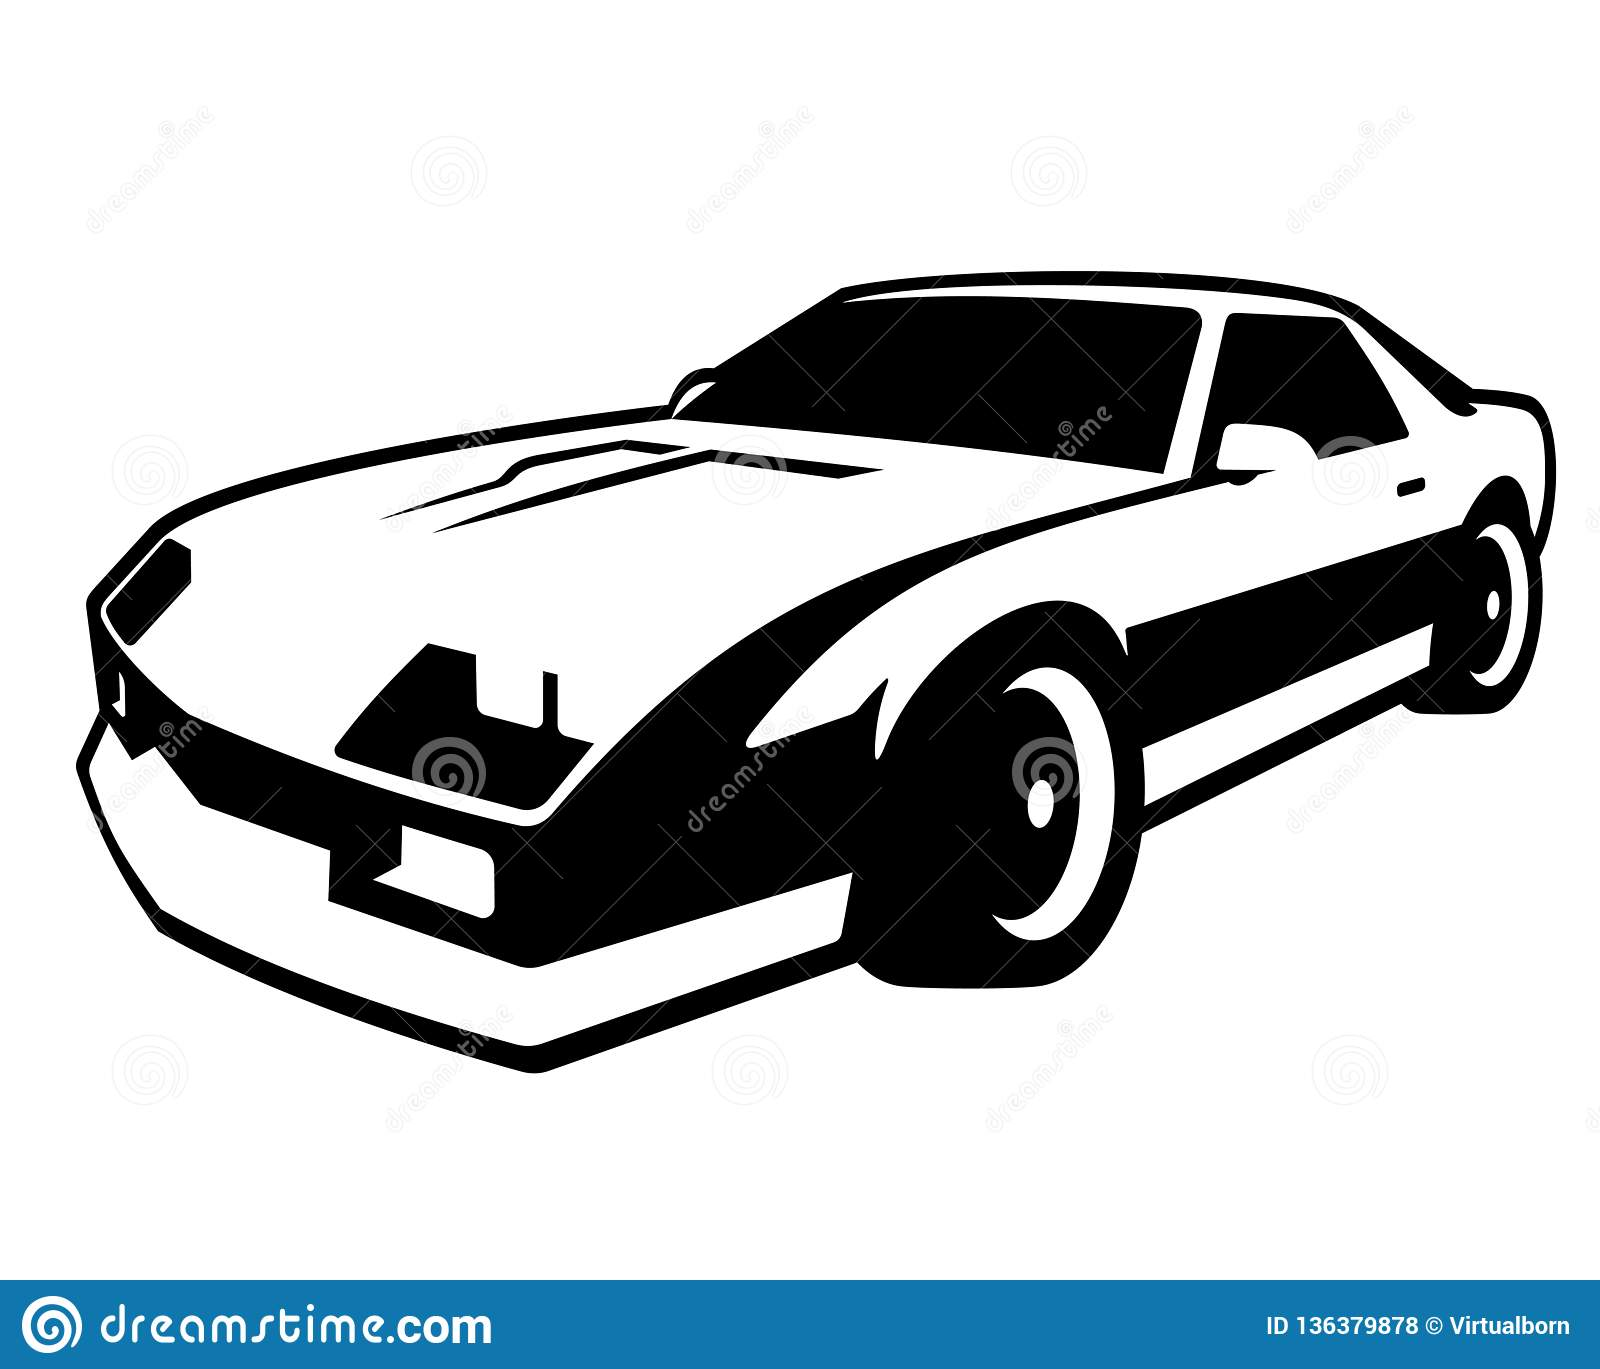 Retro muscle car vector illustration vintage black and white sticker of reto car old black mobile isolated on white